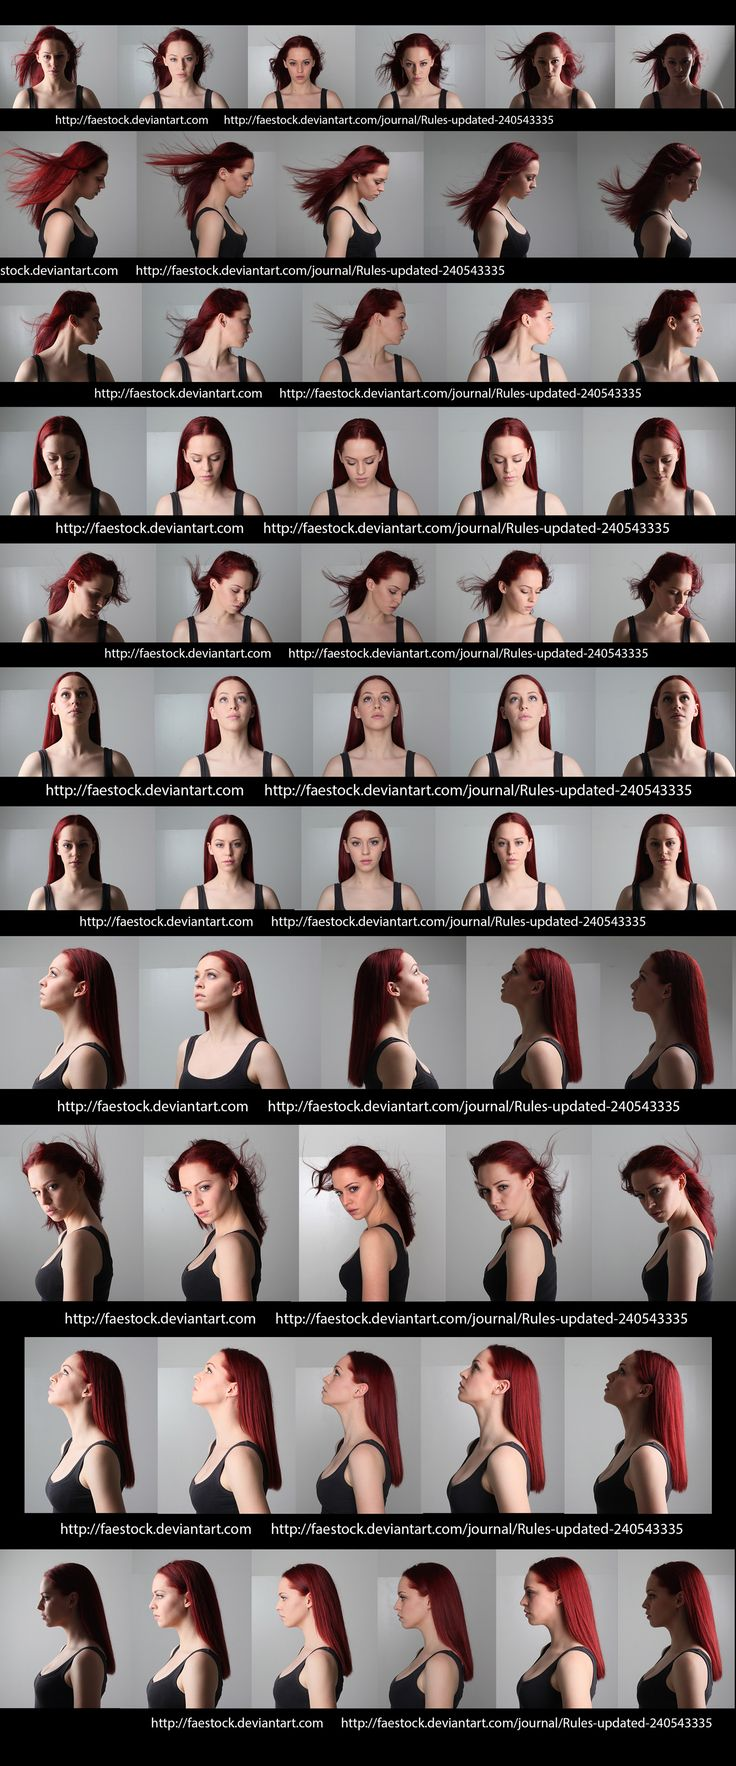 Female face angles & lighting reference.    http://faestock.deviantart.com/